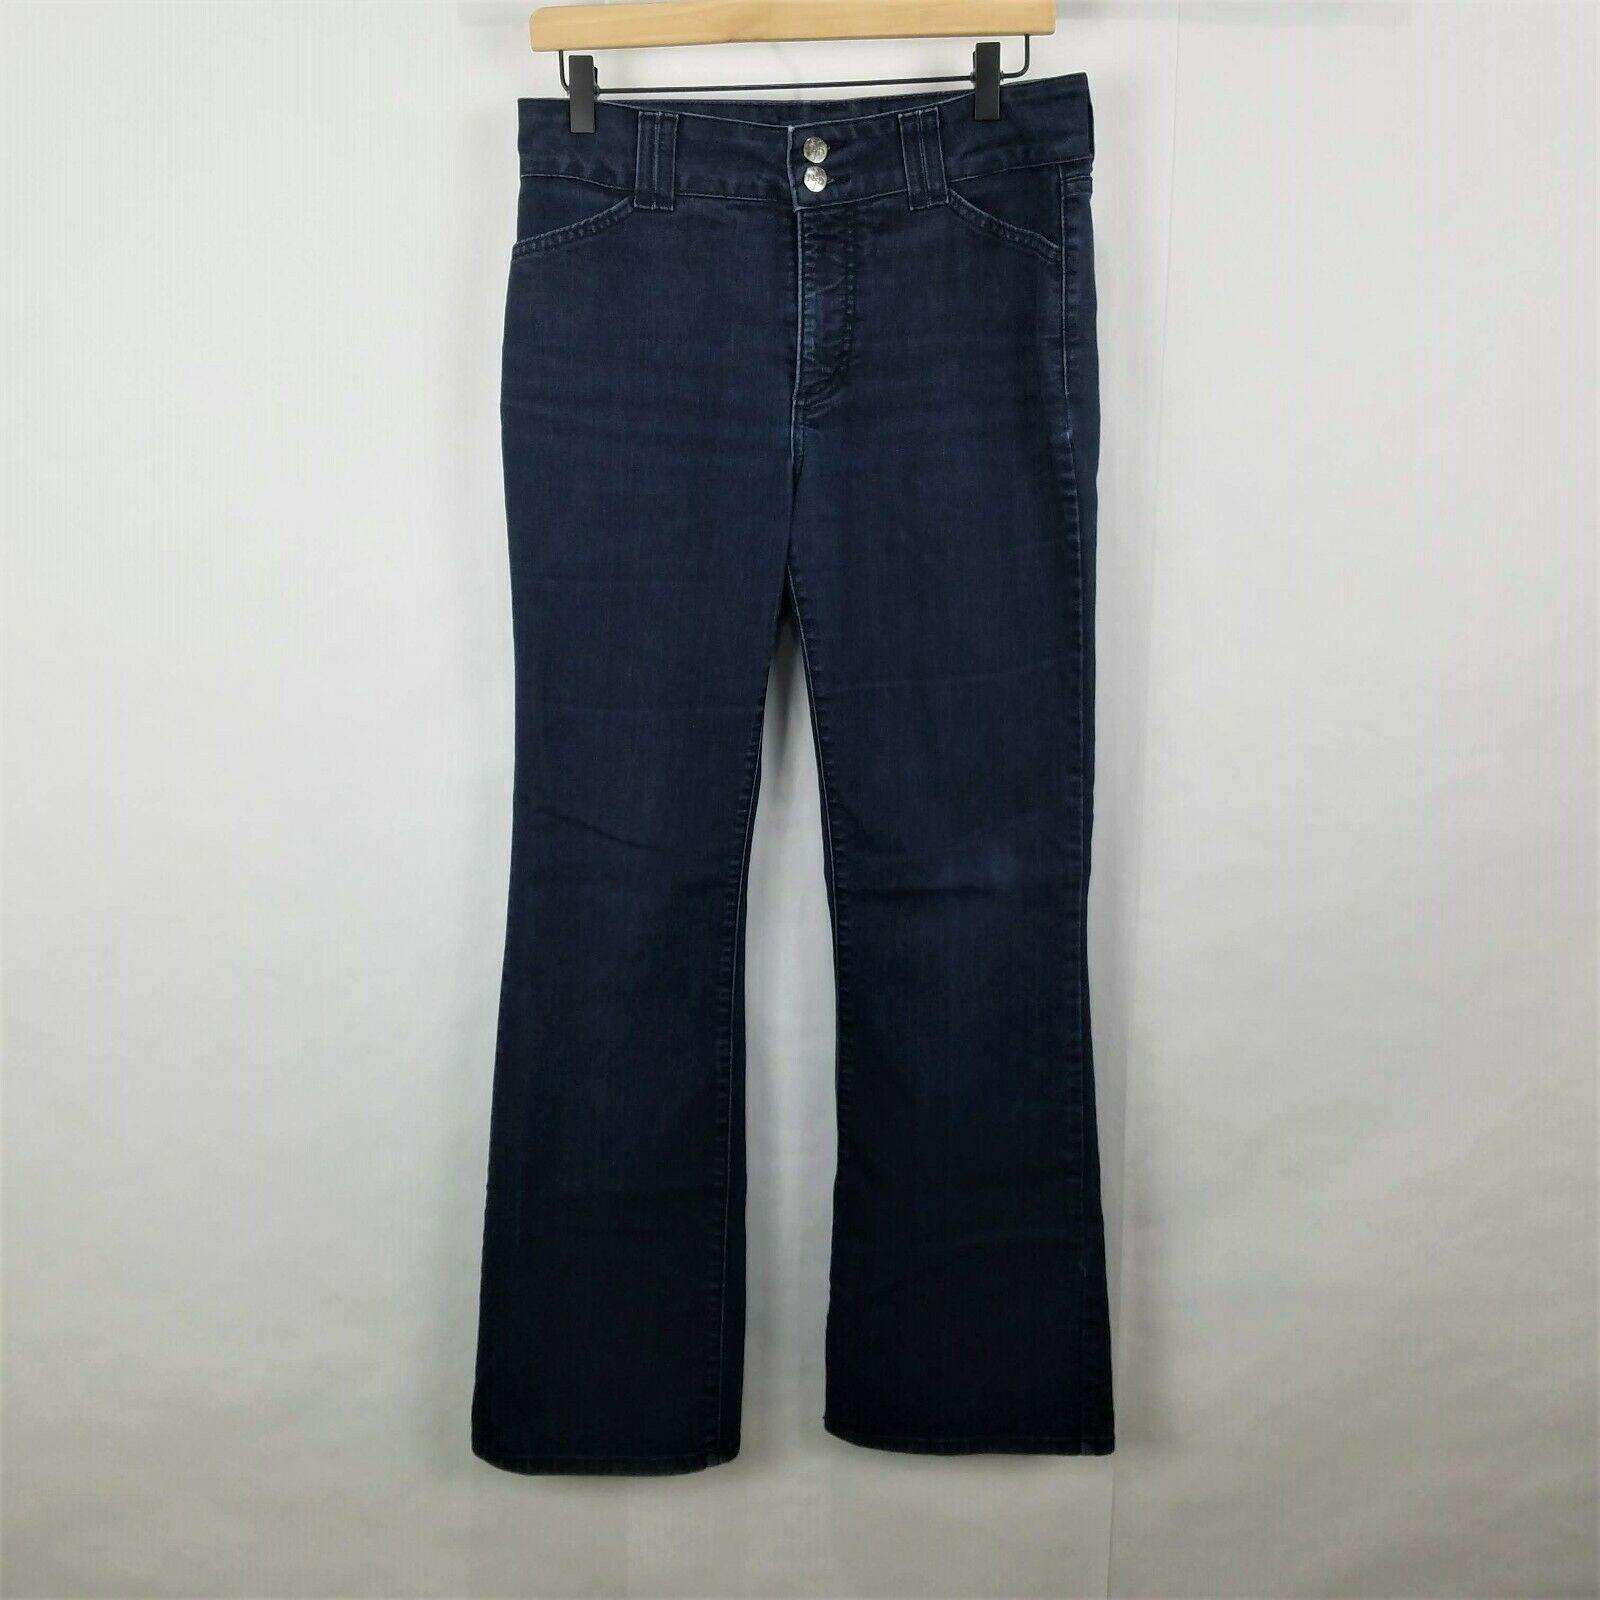 Not Your Daughters Jeans Womens Size 8 Dark Wash Bootcut Double Button Jeans